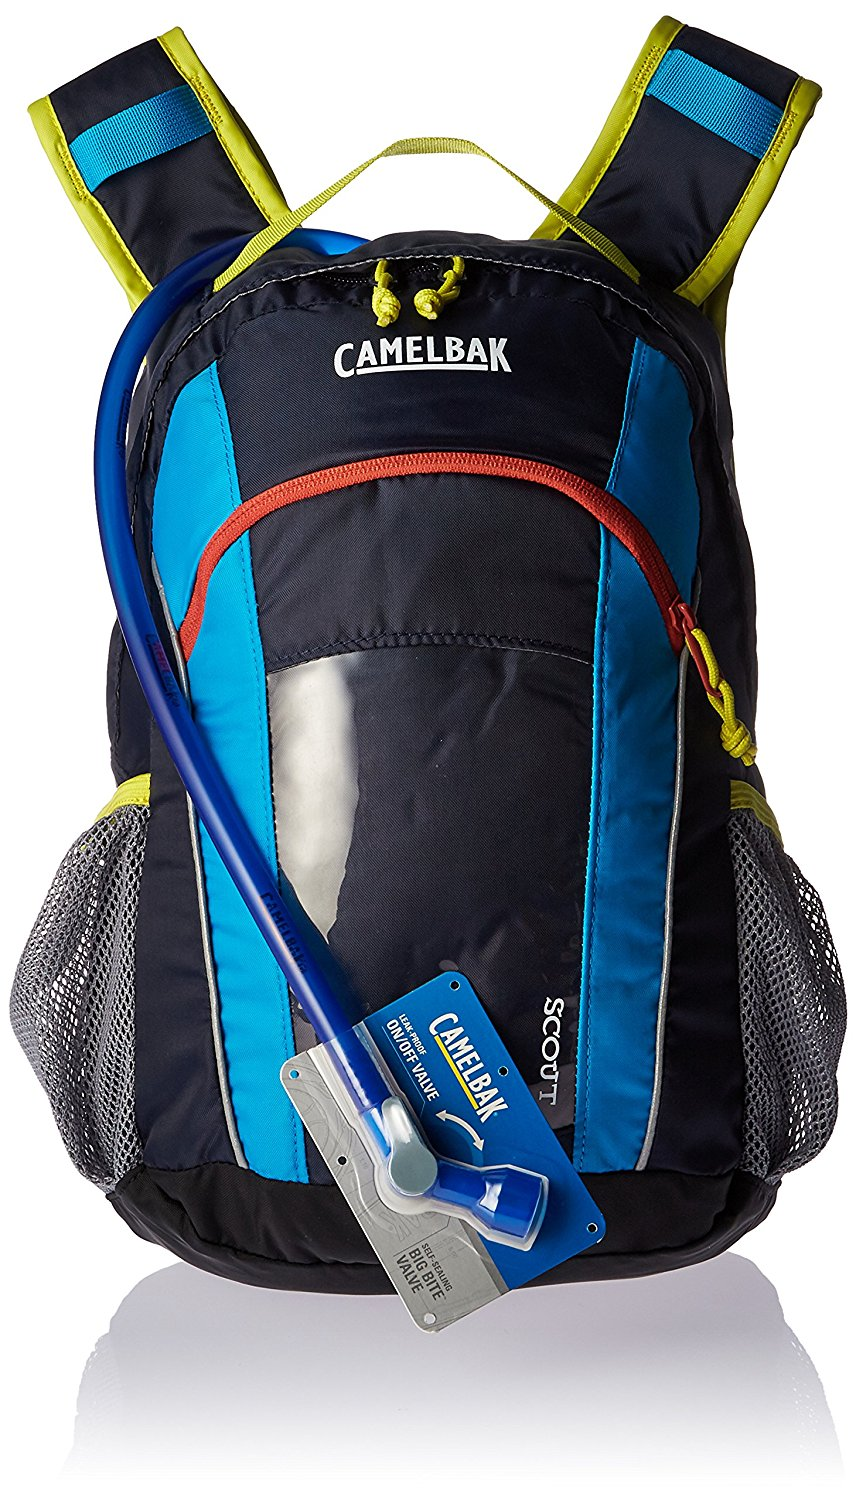 CamelBak Rucksack Kinder amazon